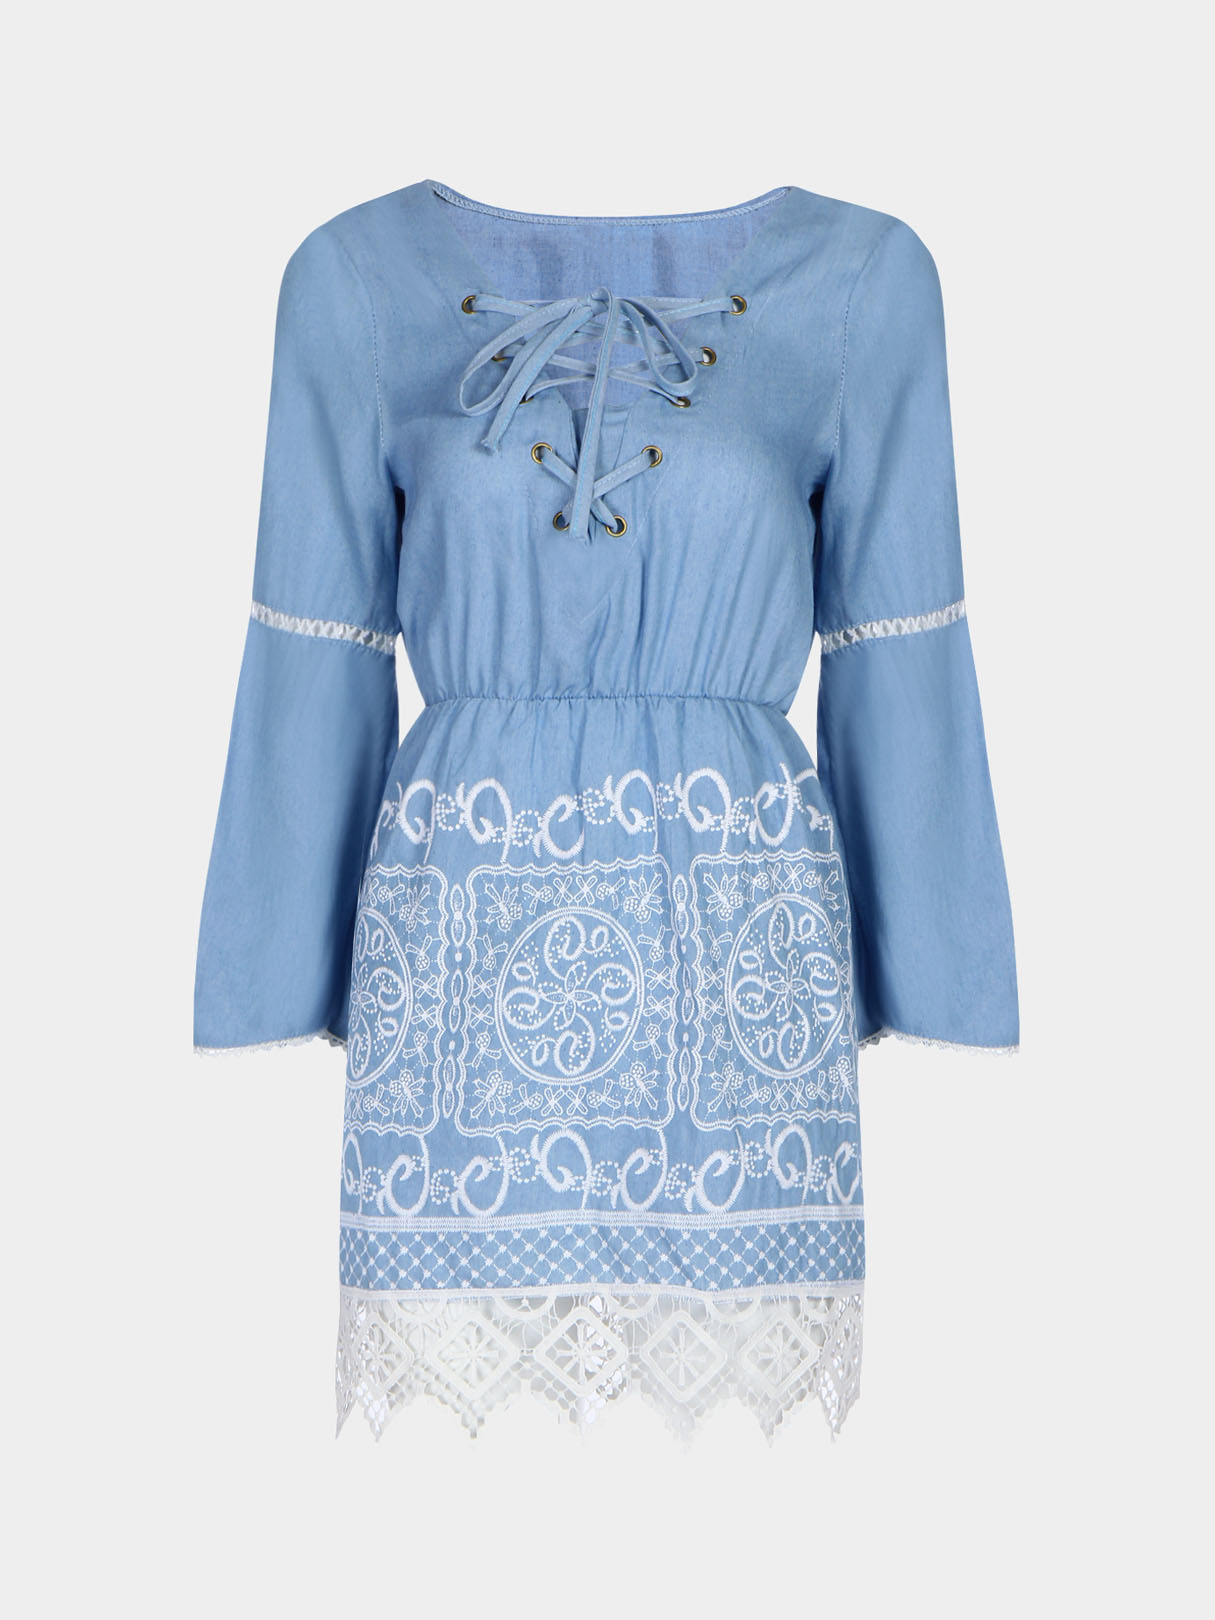 Lace Insert Hollow Out 3/4 Length Sleeves Dress